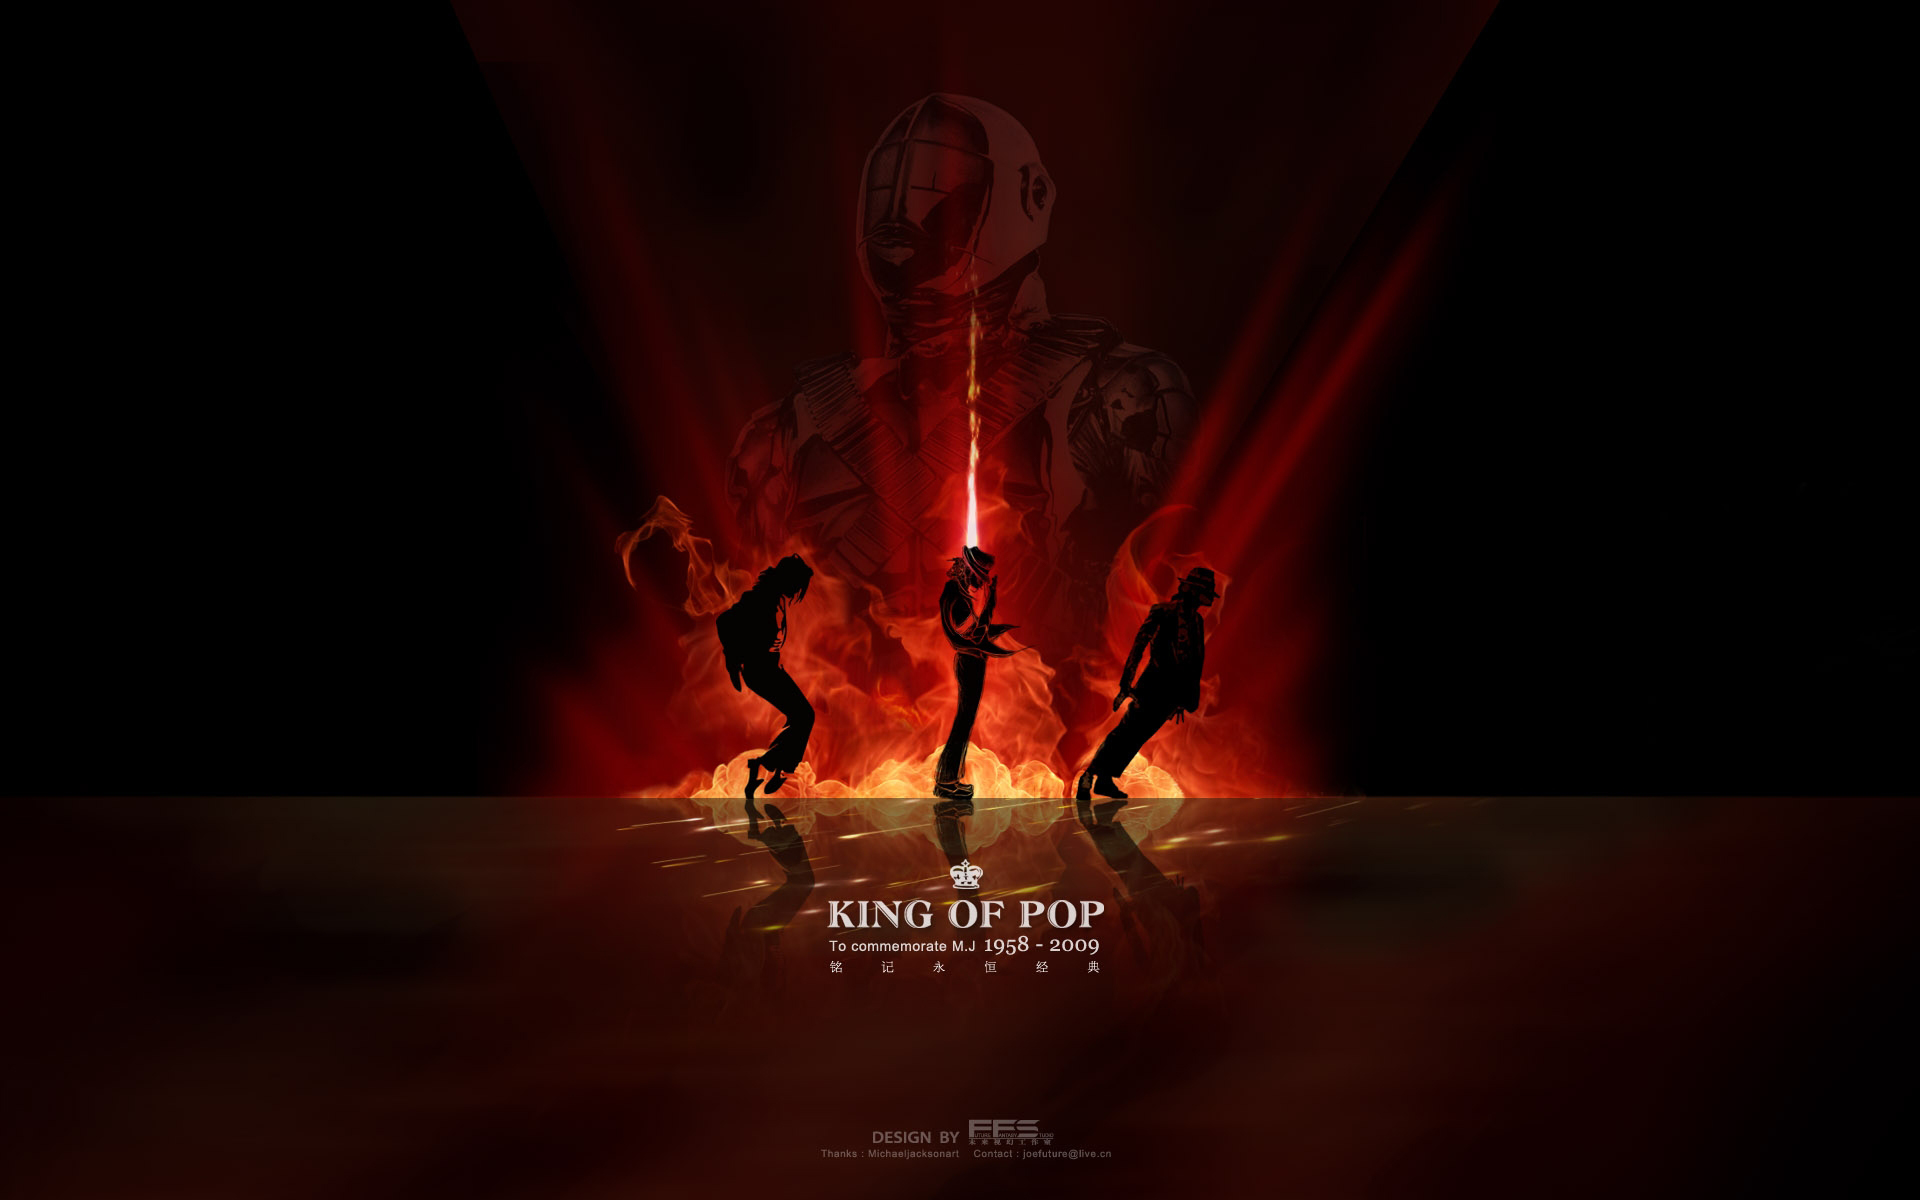 KING OF POP 2016.84 Kb